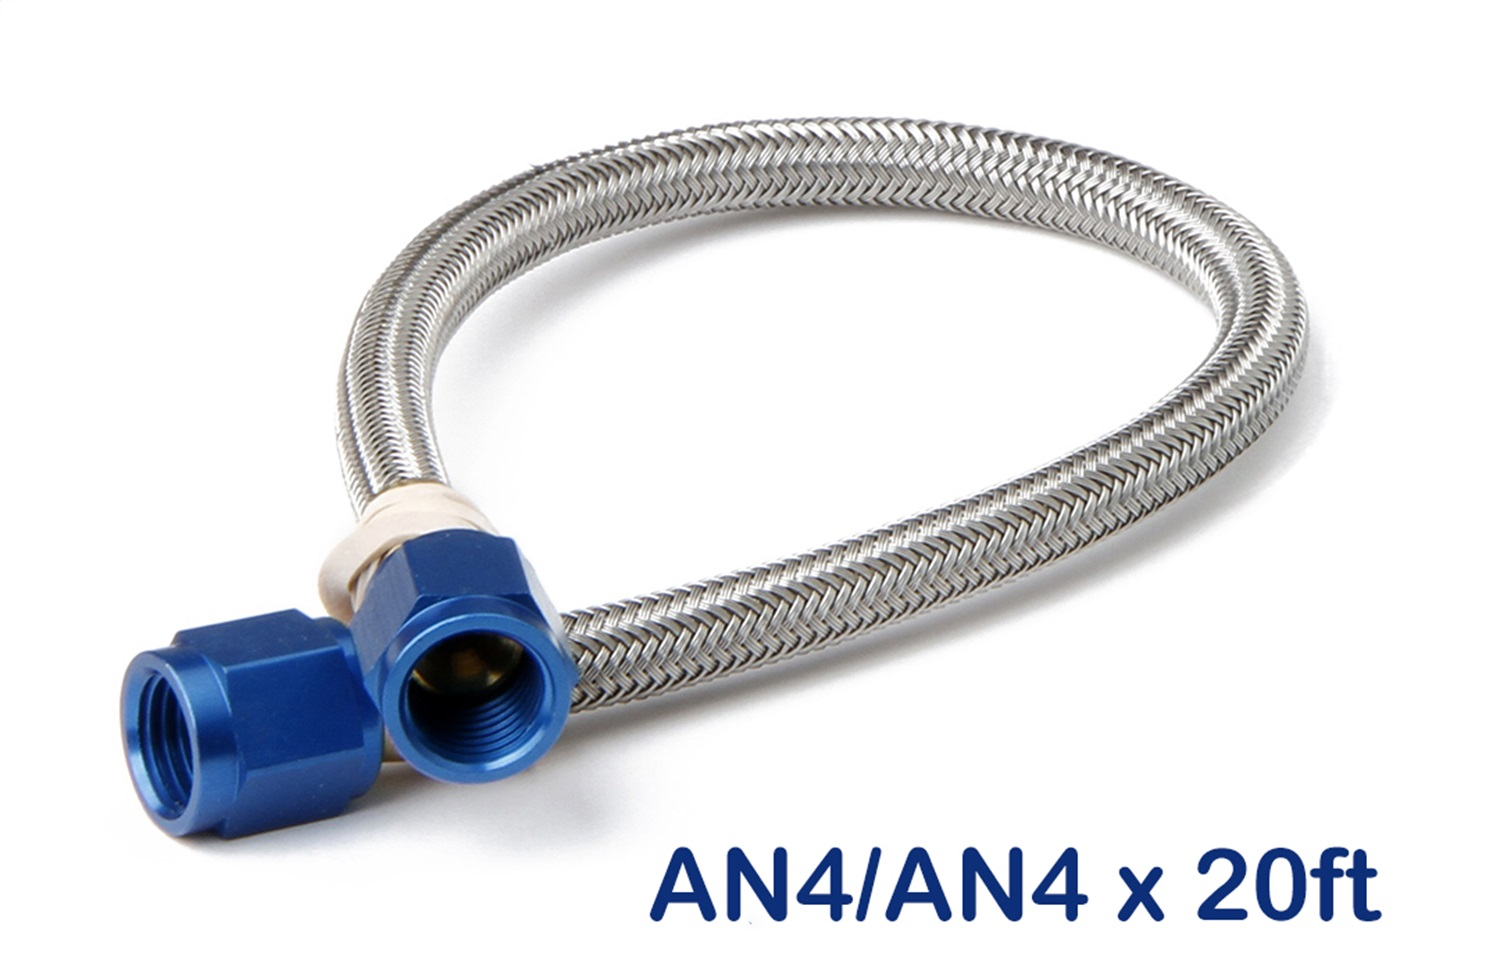 NOS 15305NOS Stainless Steel Braided Hose